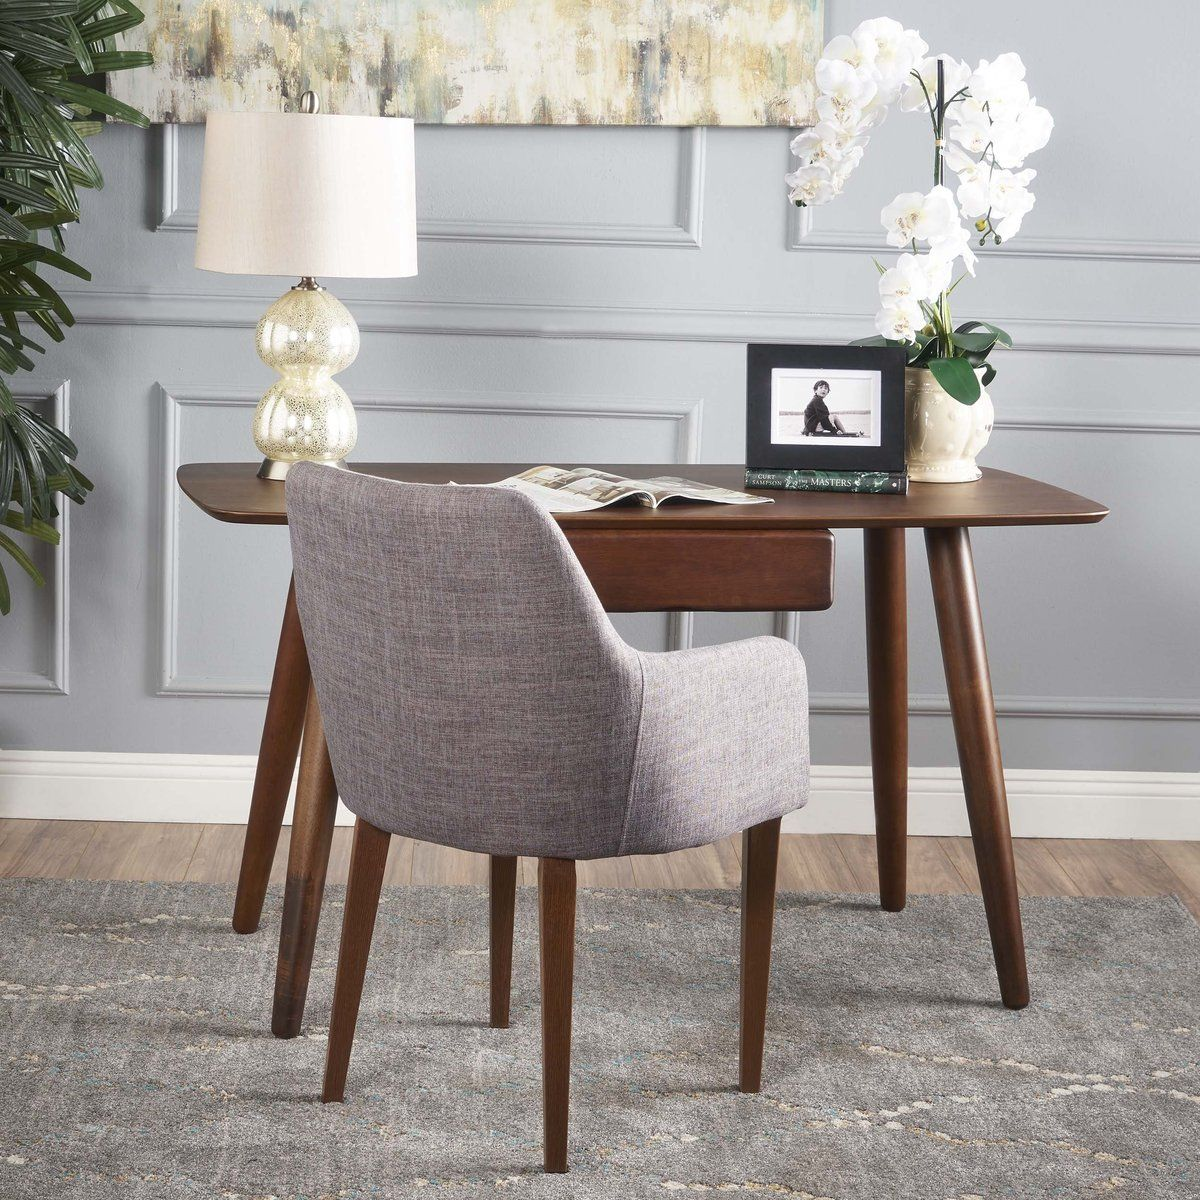 Khan finish wood study table with faux wood overlay cool